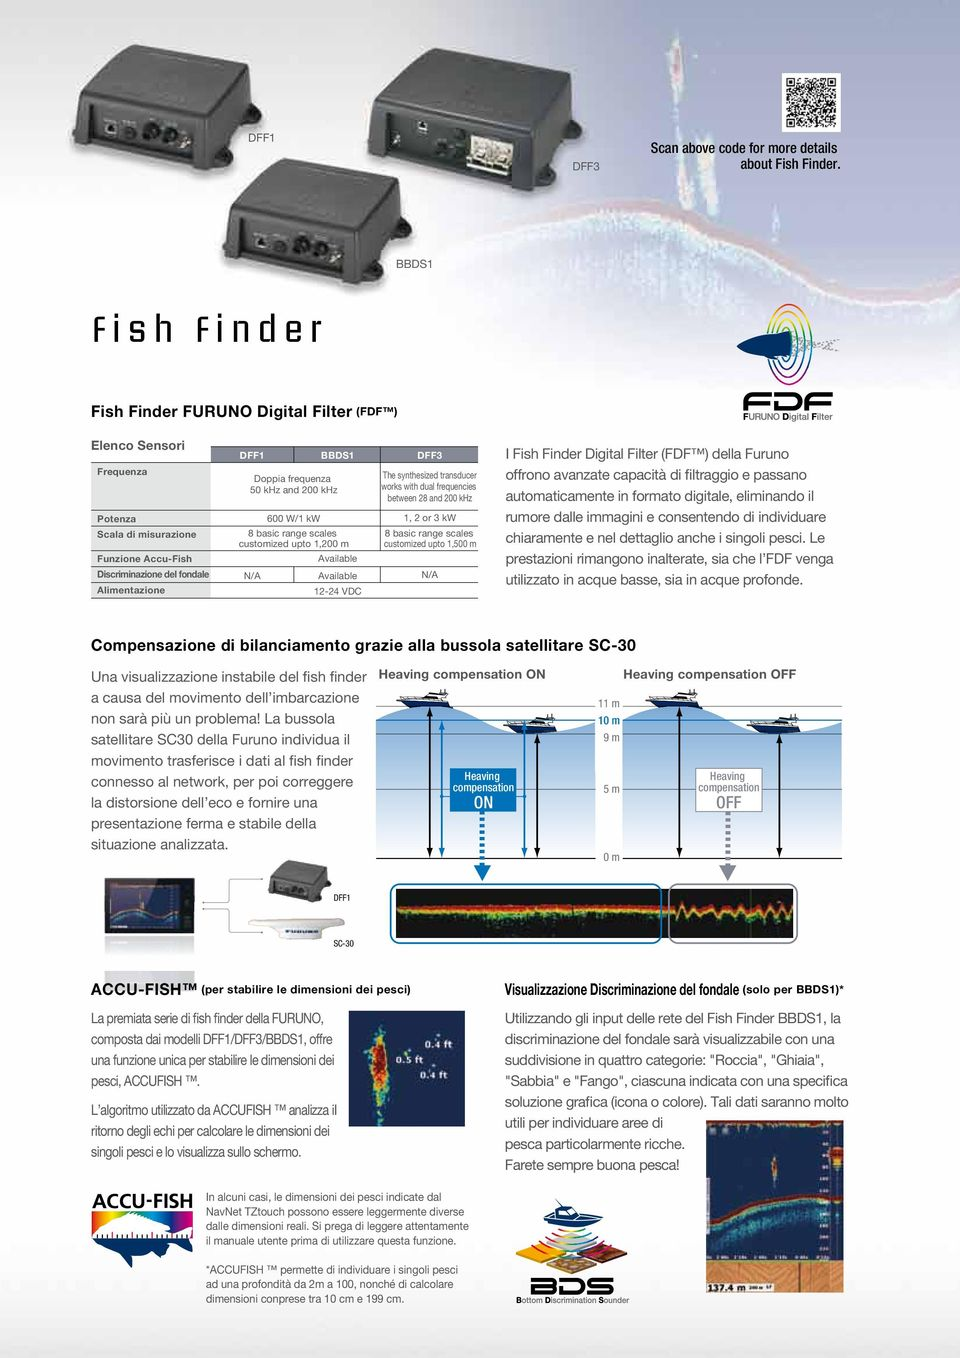 frequenza 50 khz and 200 khz DFF3 The synthesized transducer works with dual frequencies between 28 and 200 khz 1, 2 or 3 kw 8 basic range scales customized upto 1,500 m 600 W/1 kw 8 basic range